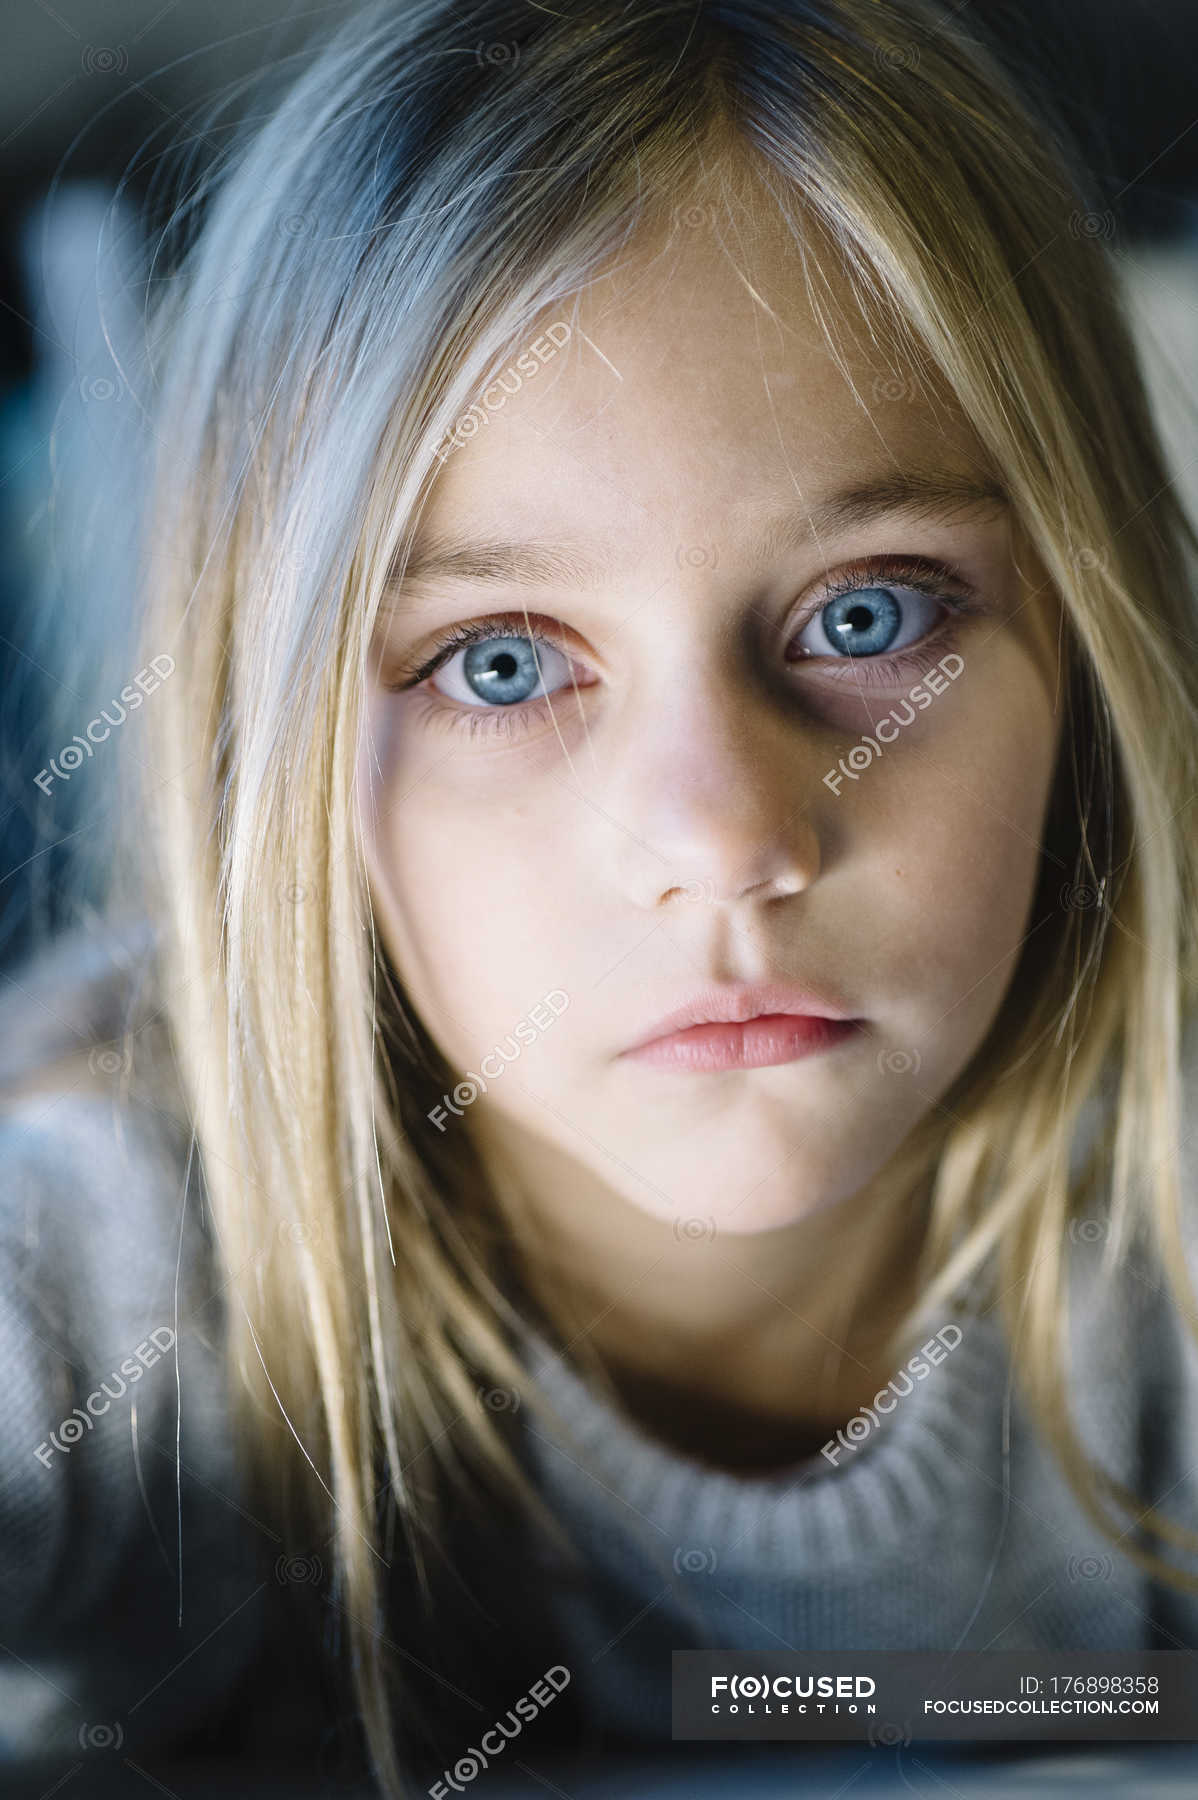 Beautiful Blonde Preteen Girl With Big Blue Eyes Looking